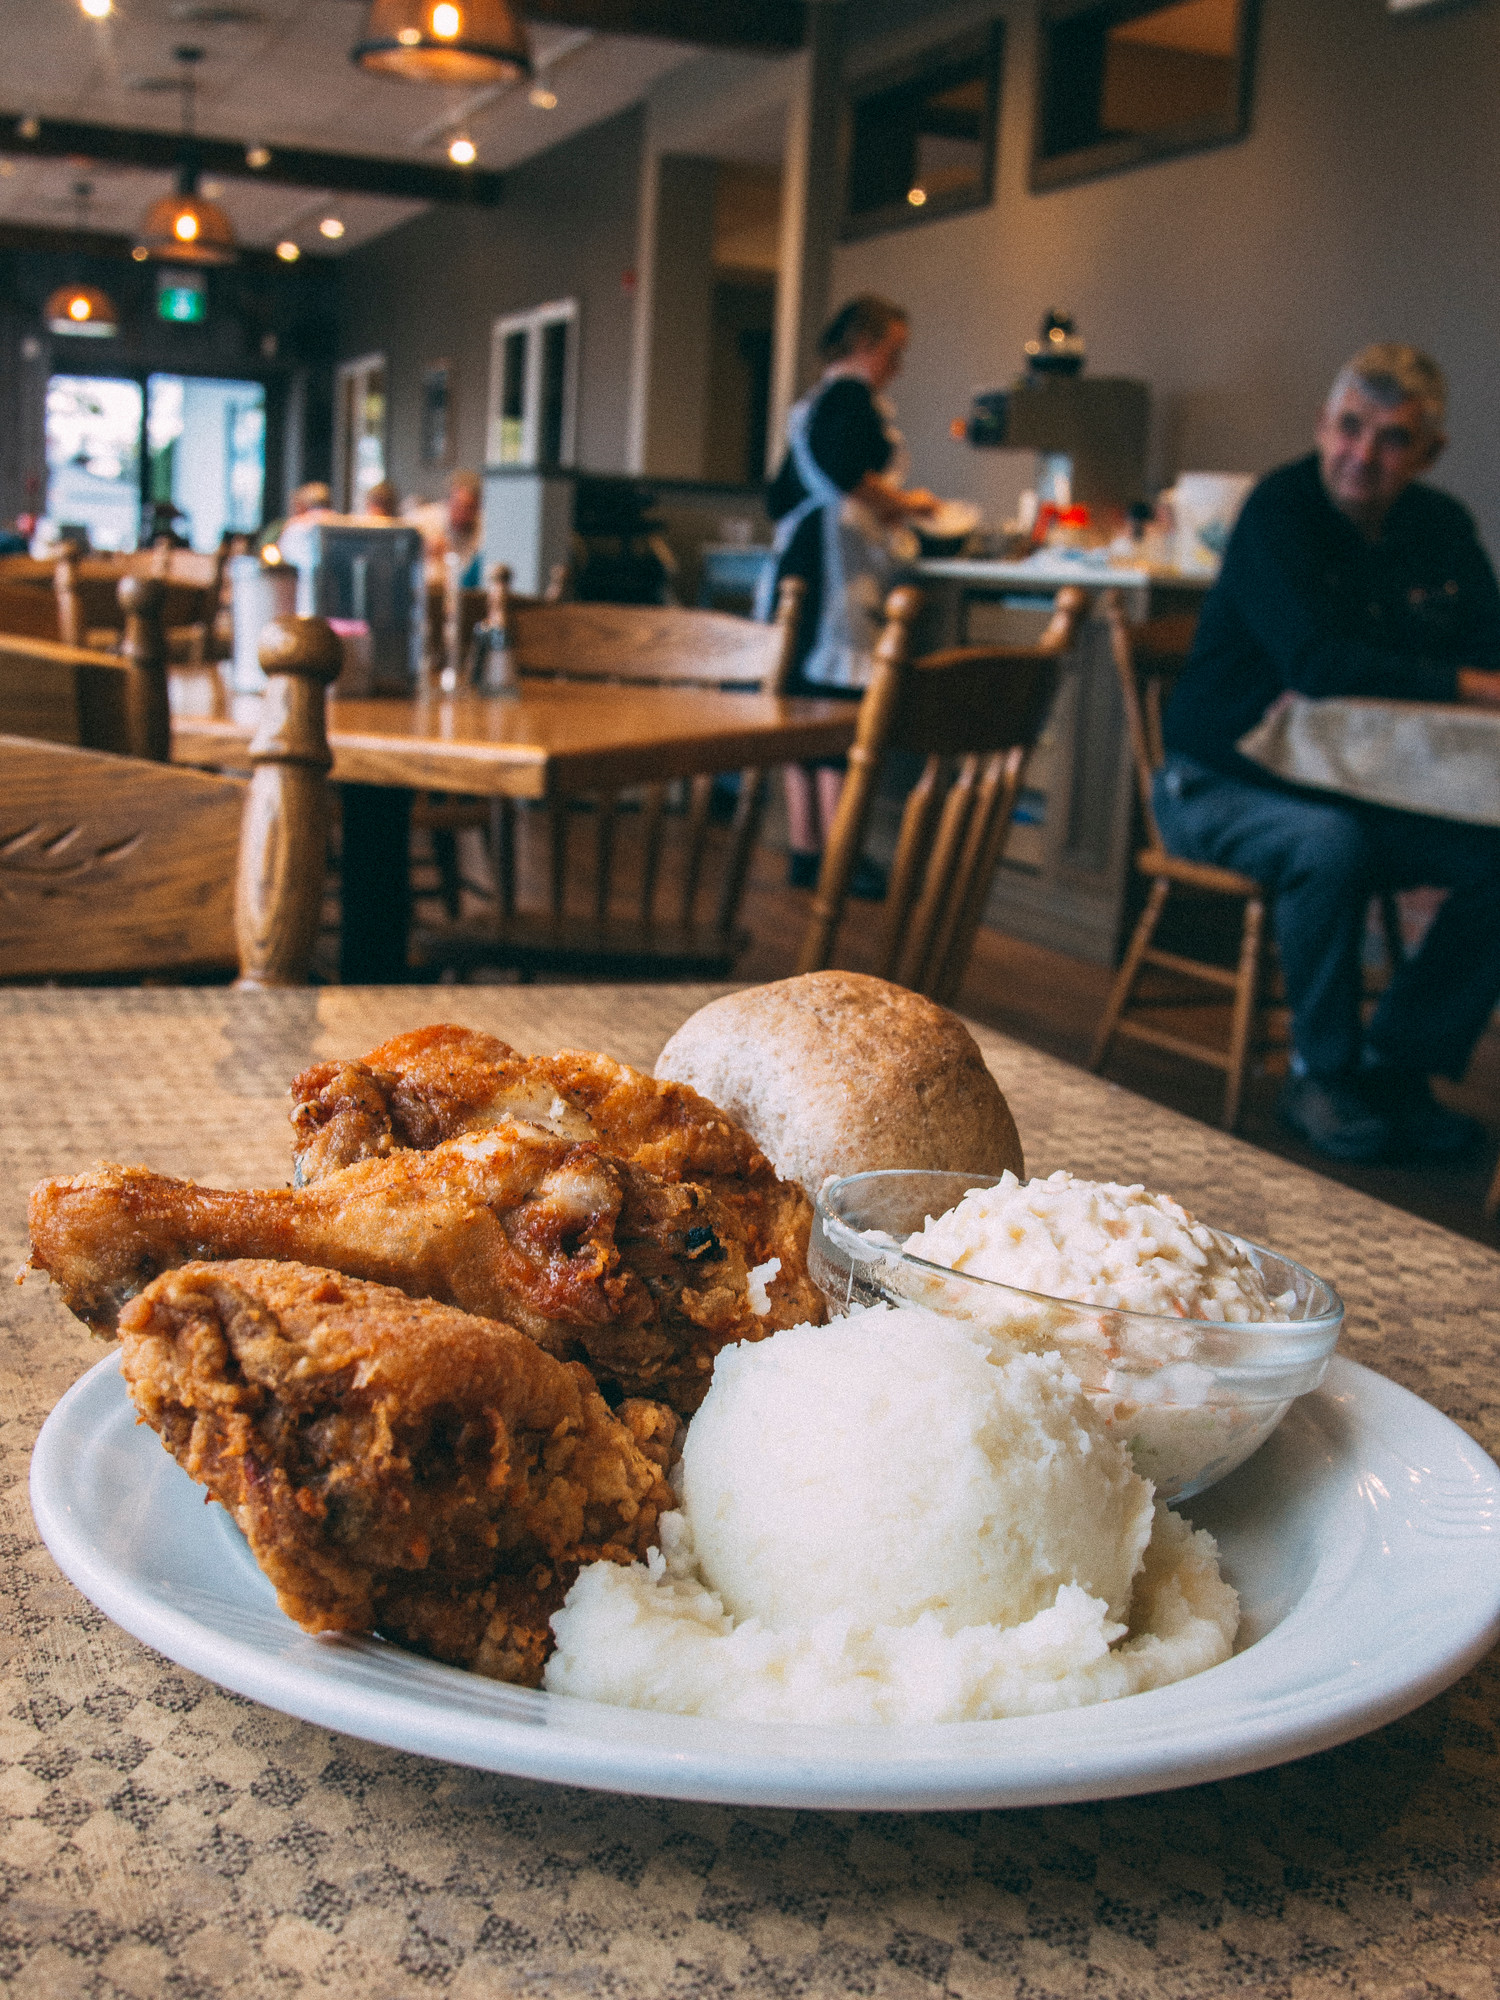 Anna Mae's Broasted Chicken in East Perth County, Ontario is a Mennonite restaurants that is popular with locals and very reasonably priced.